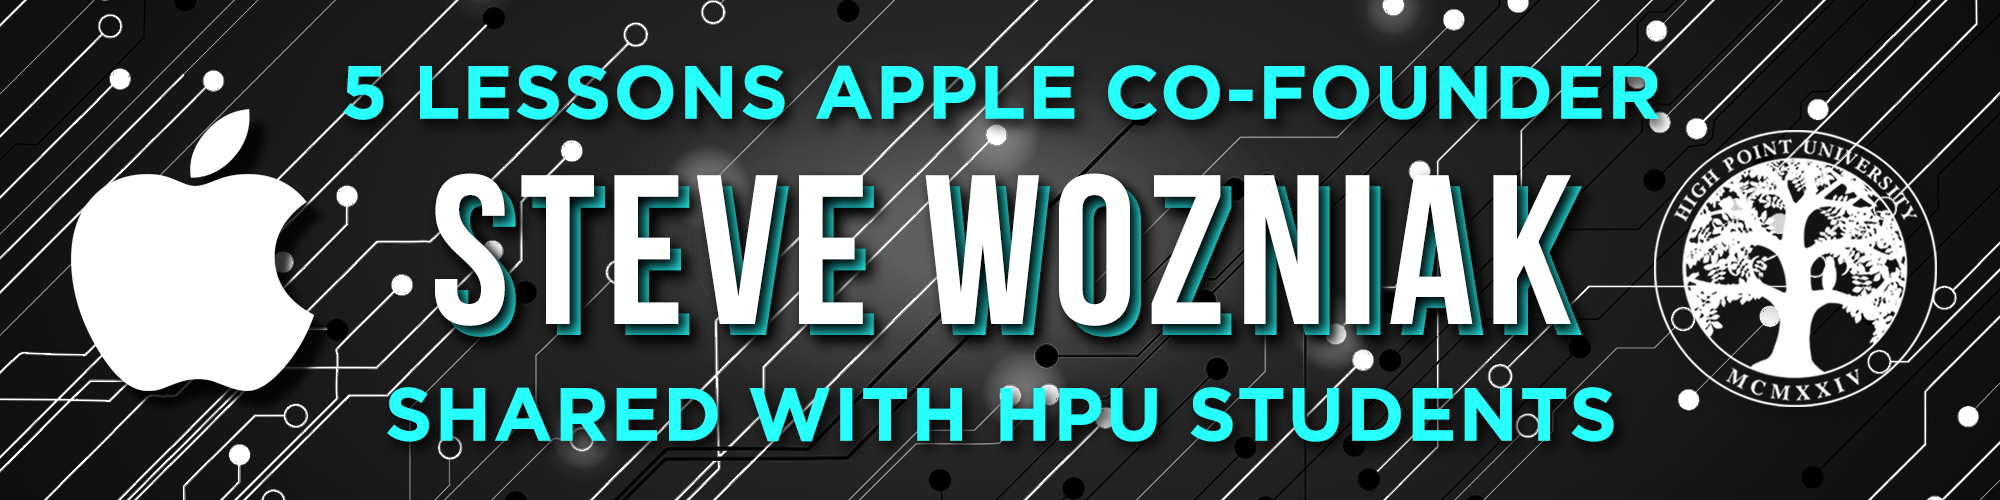 5 Lessons Apple Co-Founder Steve Wozniak Shared with HPU Students ...